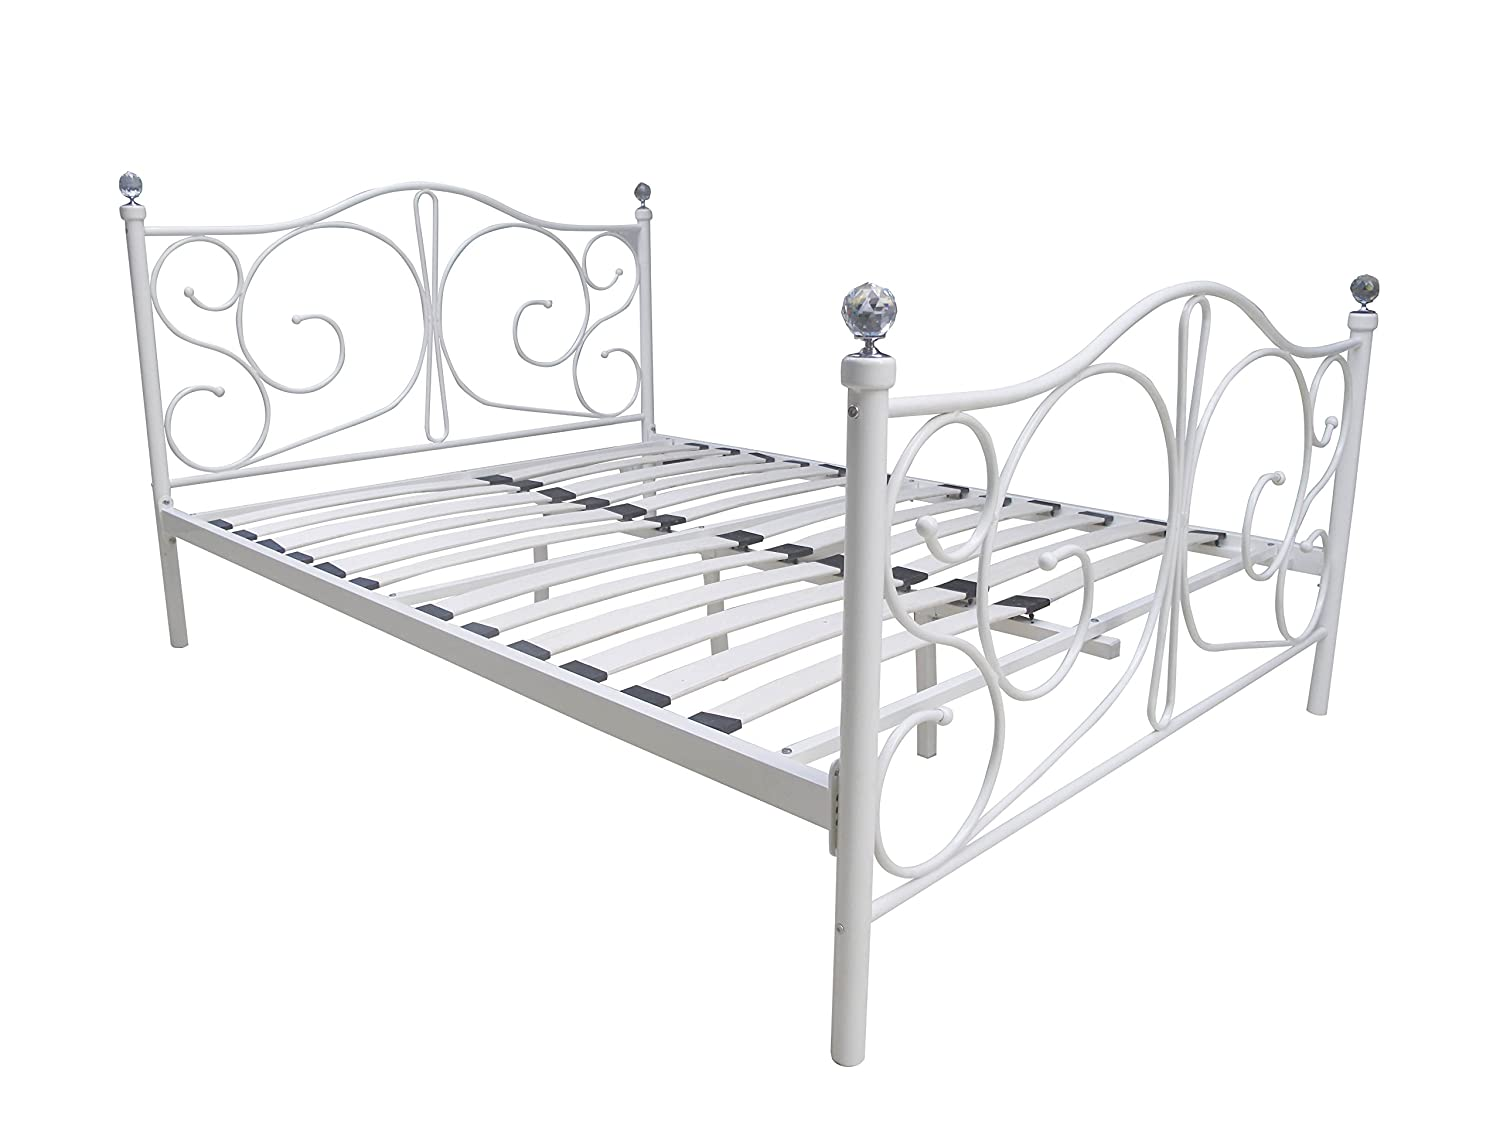 metal bed frame 5ft kingsize in white with crystal finials amazoncouk kitchen u0026 home